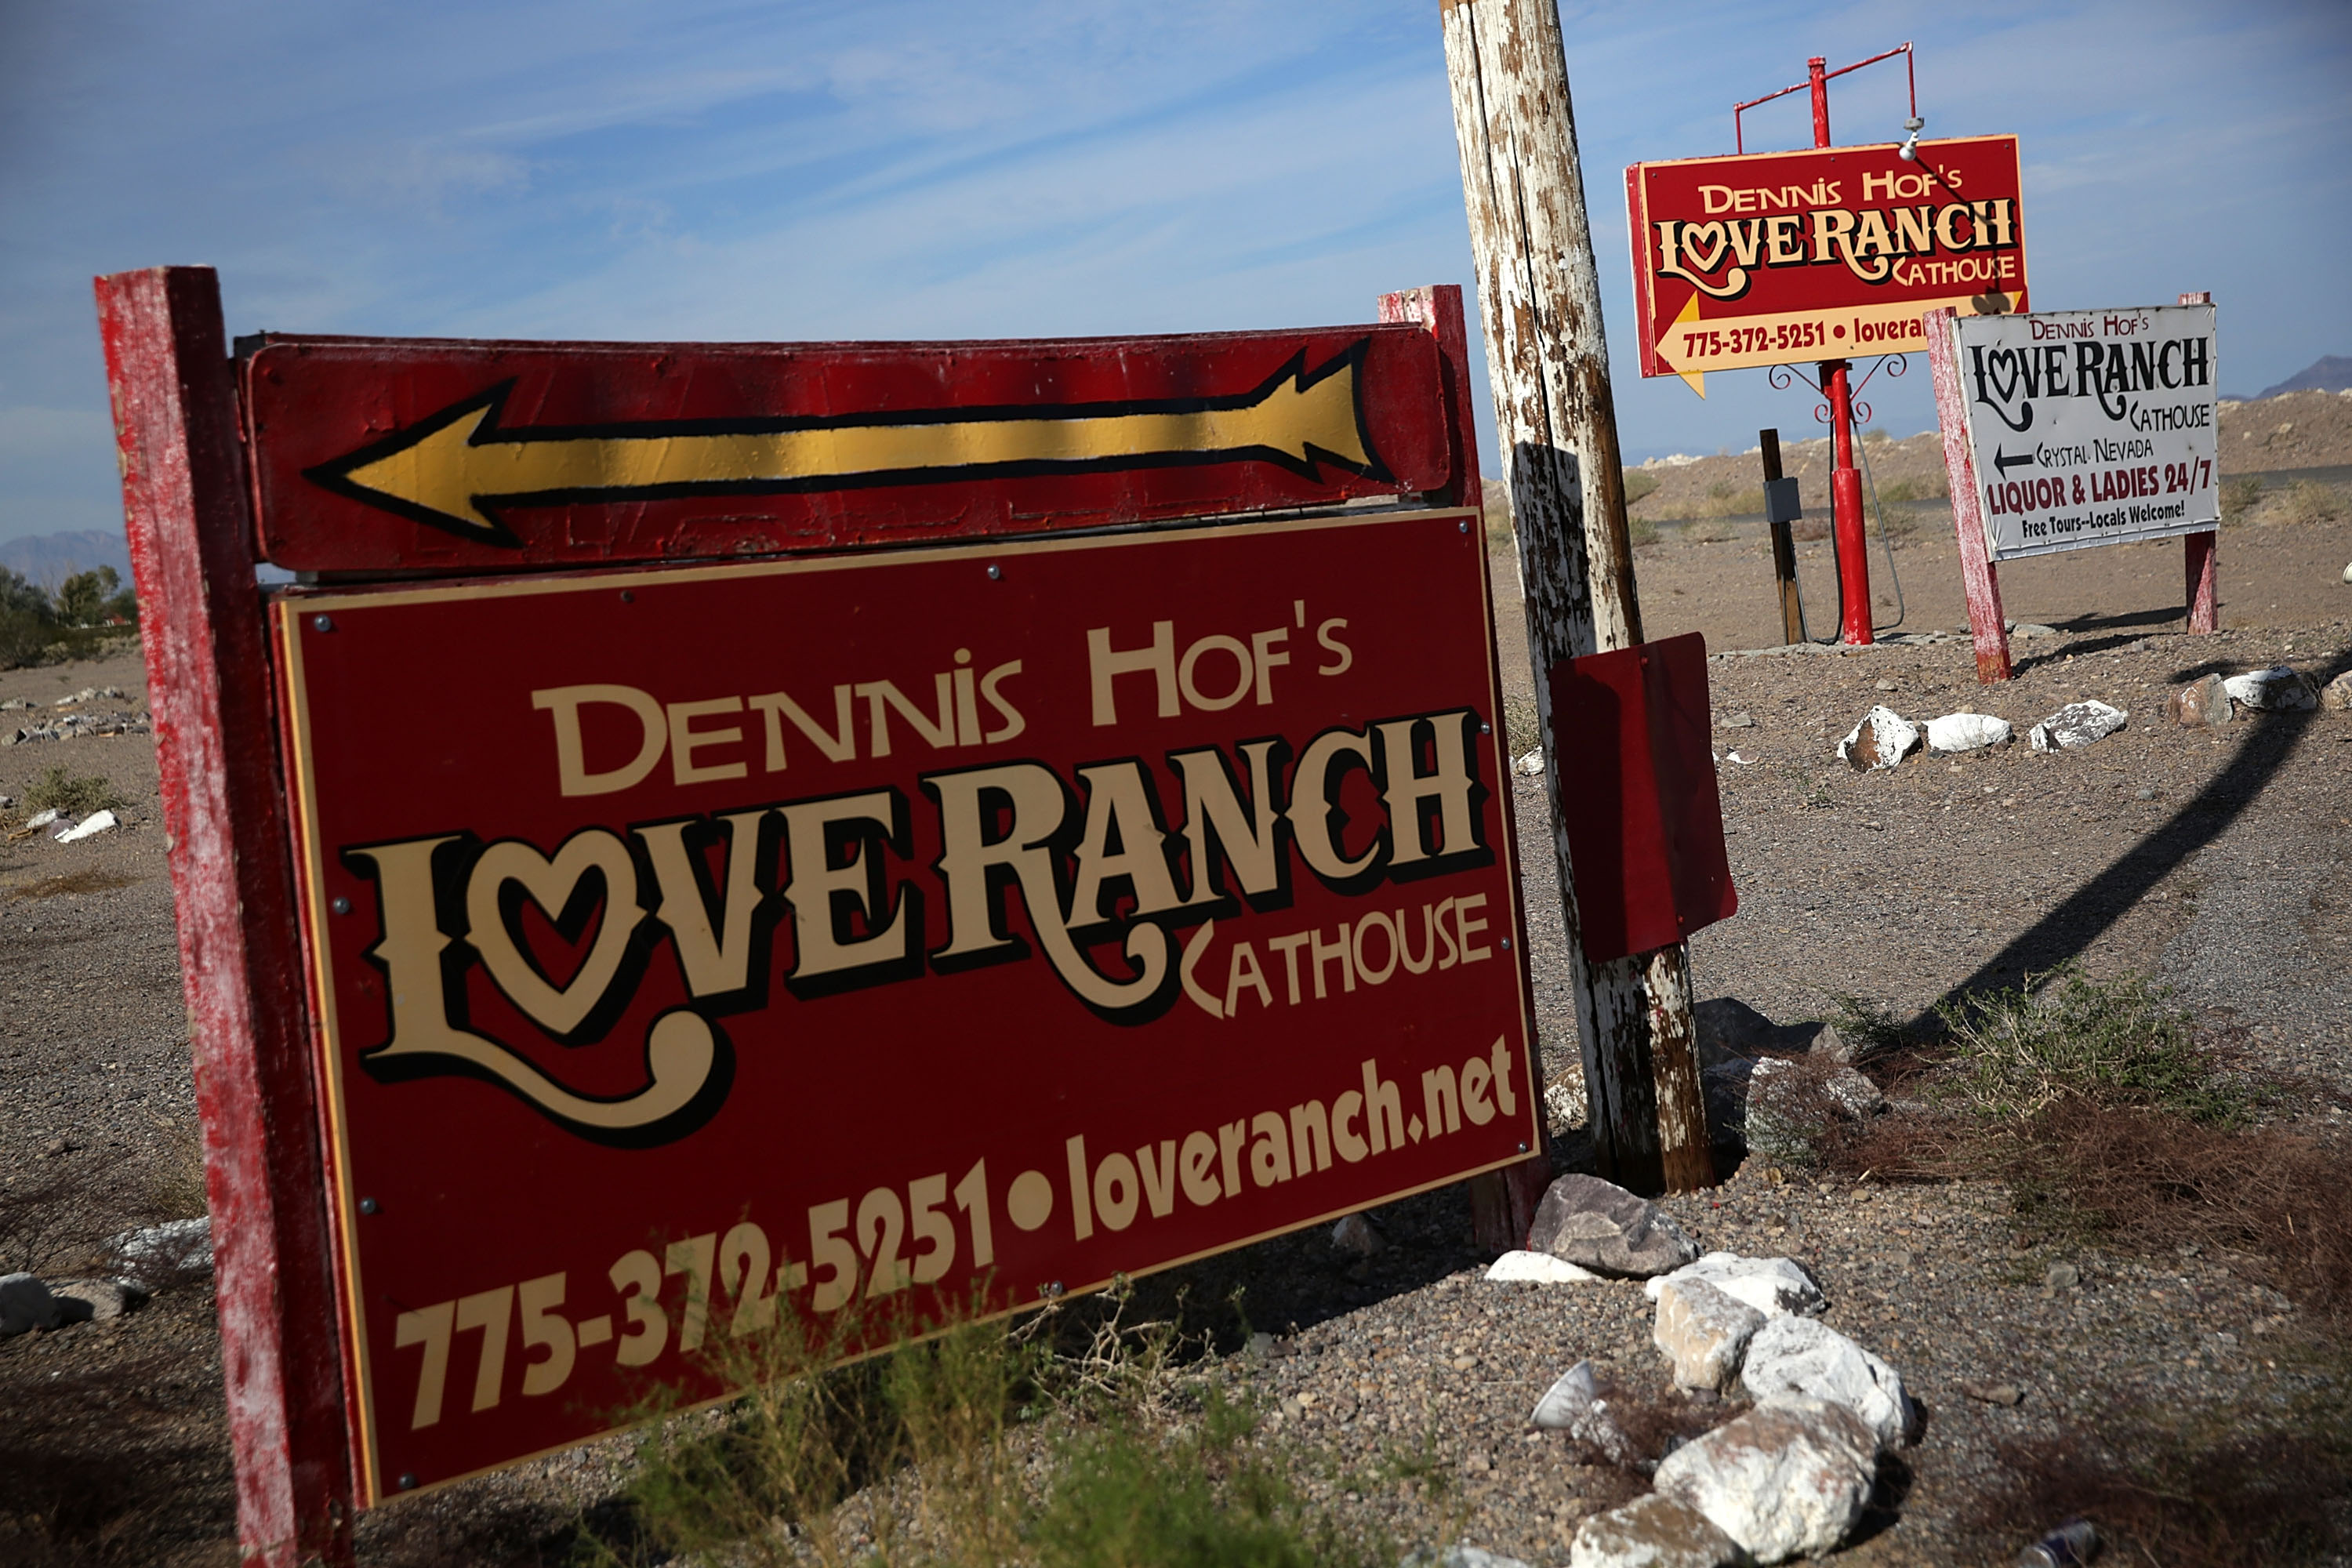 Signs for Dennis Hof's Love Ranch Las Vegas brothel are shown on October 14, 2015 in Crystal, Nevada. Alex Wong/Getty Images